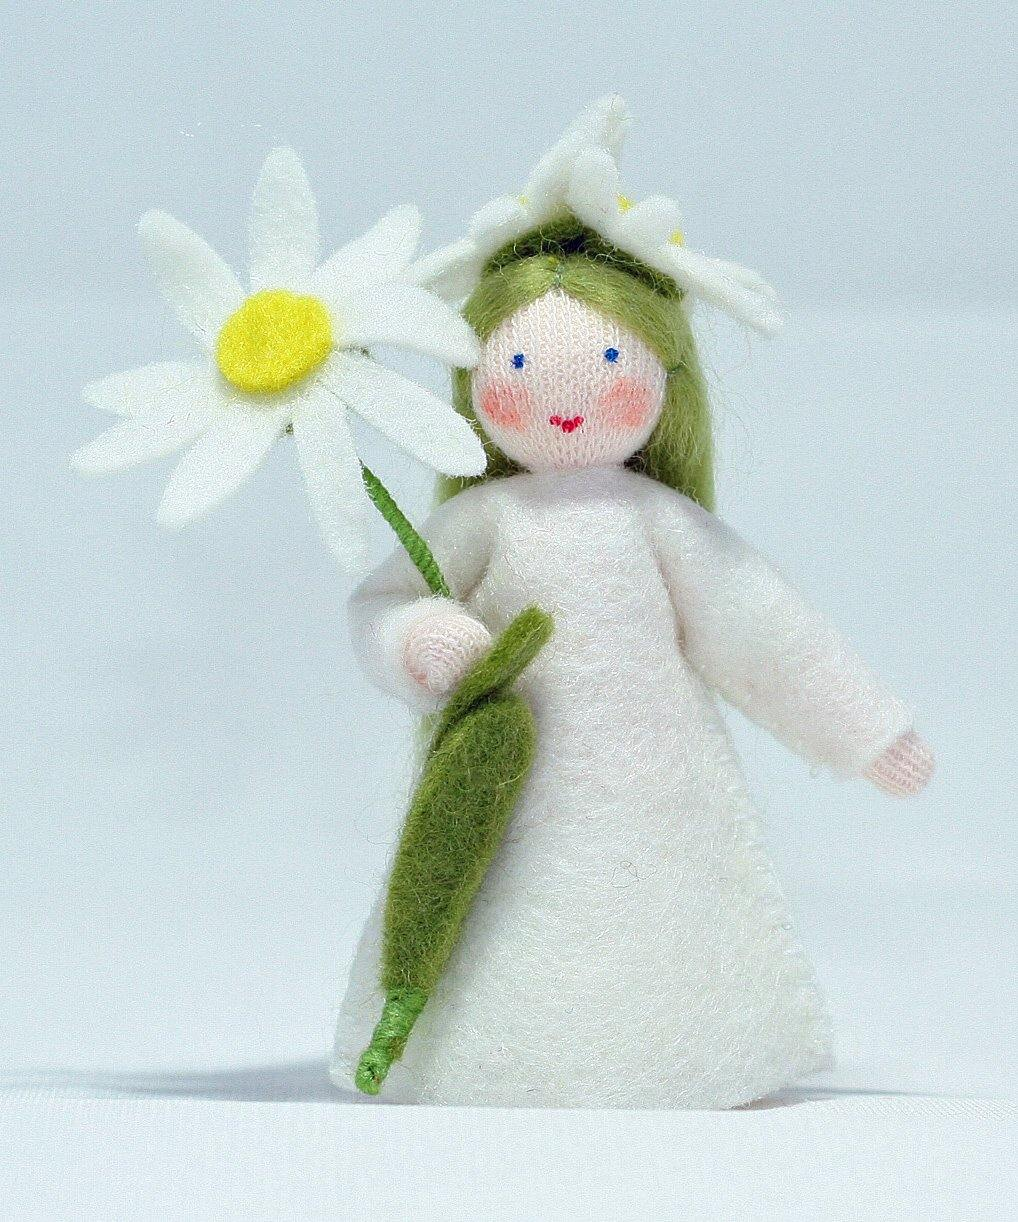 Desert Star Fairy | Waldorf Doll Shop | Eco Flower Fairies | Handmade by Ambrosius